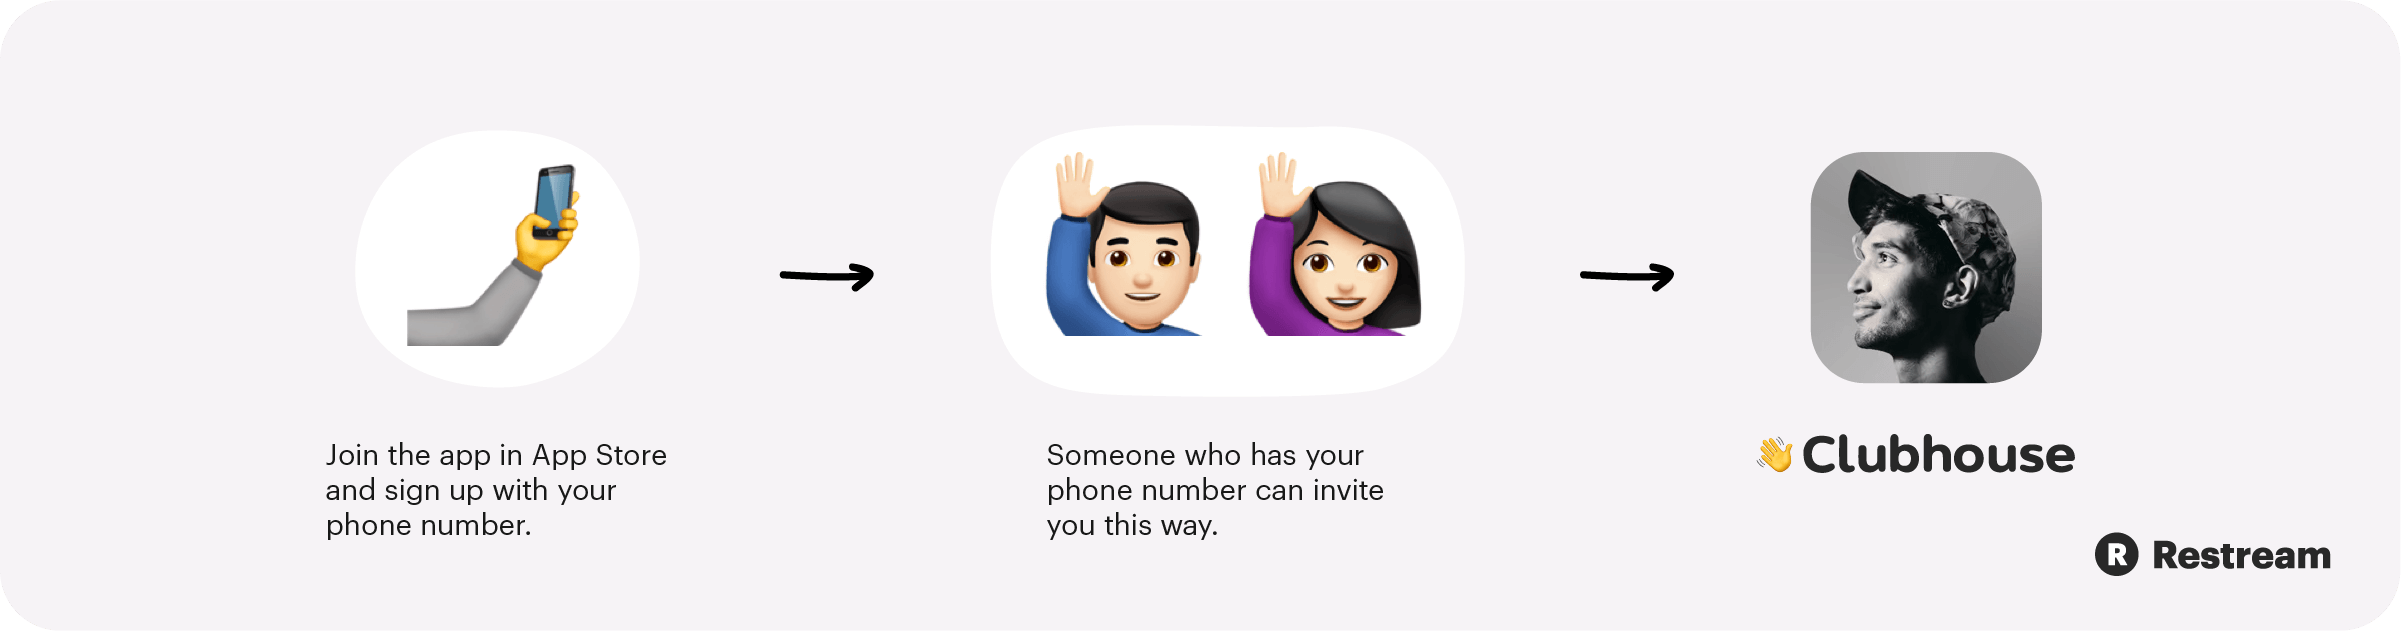 How to join Clubhouse — how to get clubhouse invite